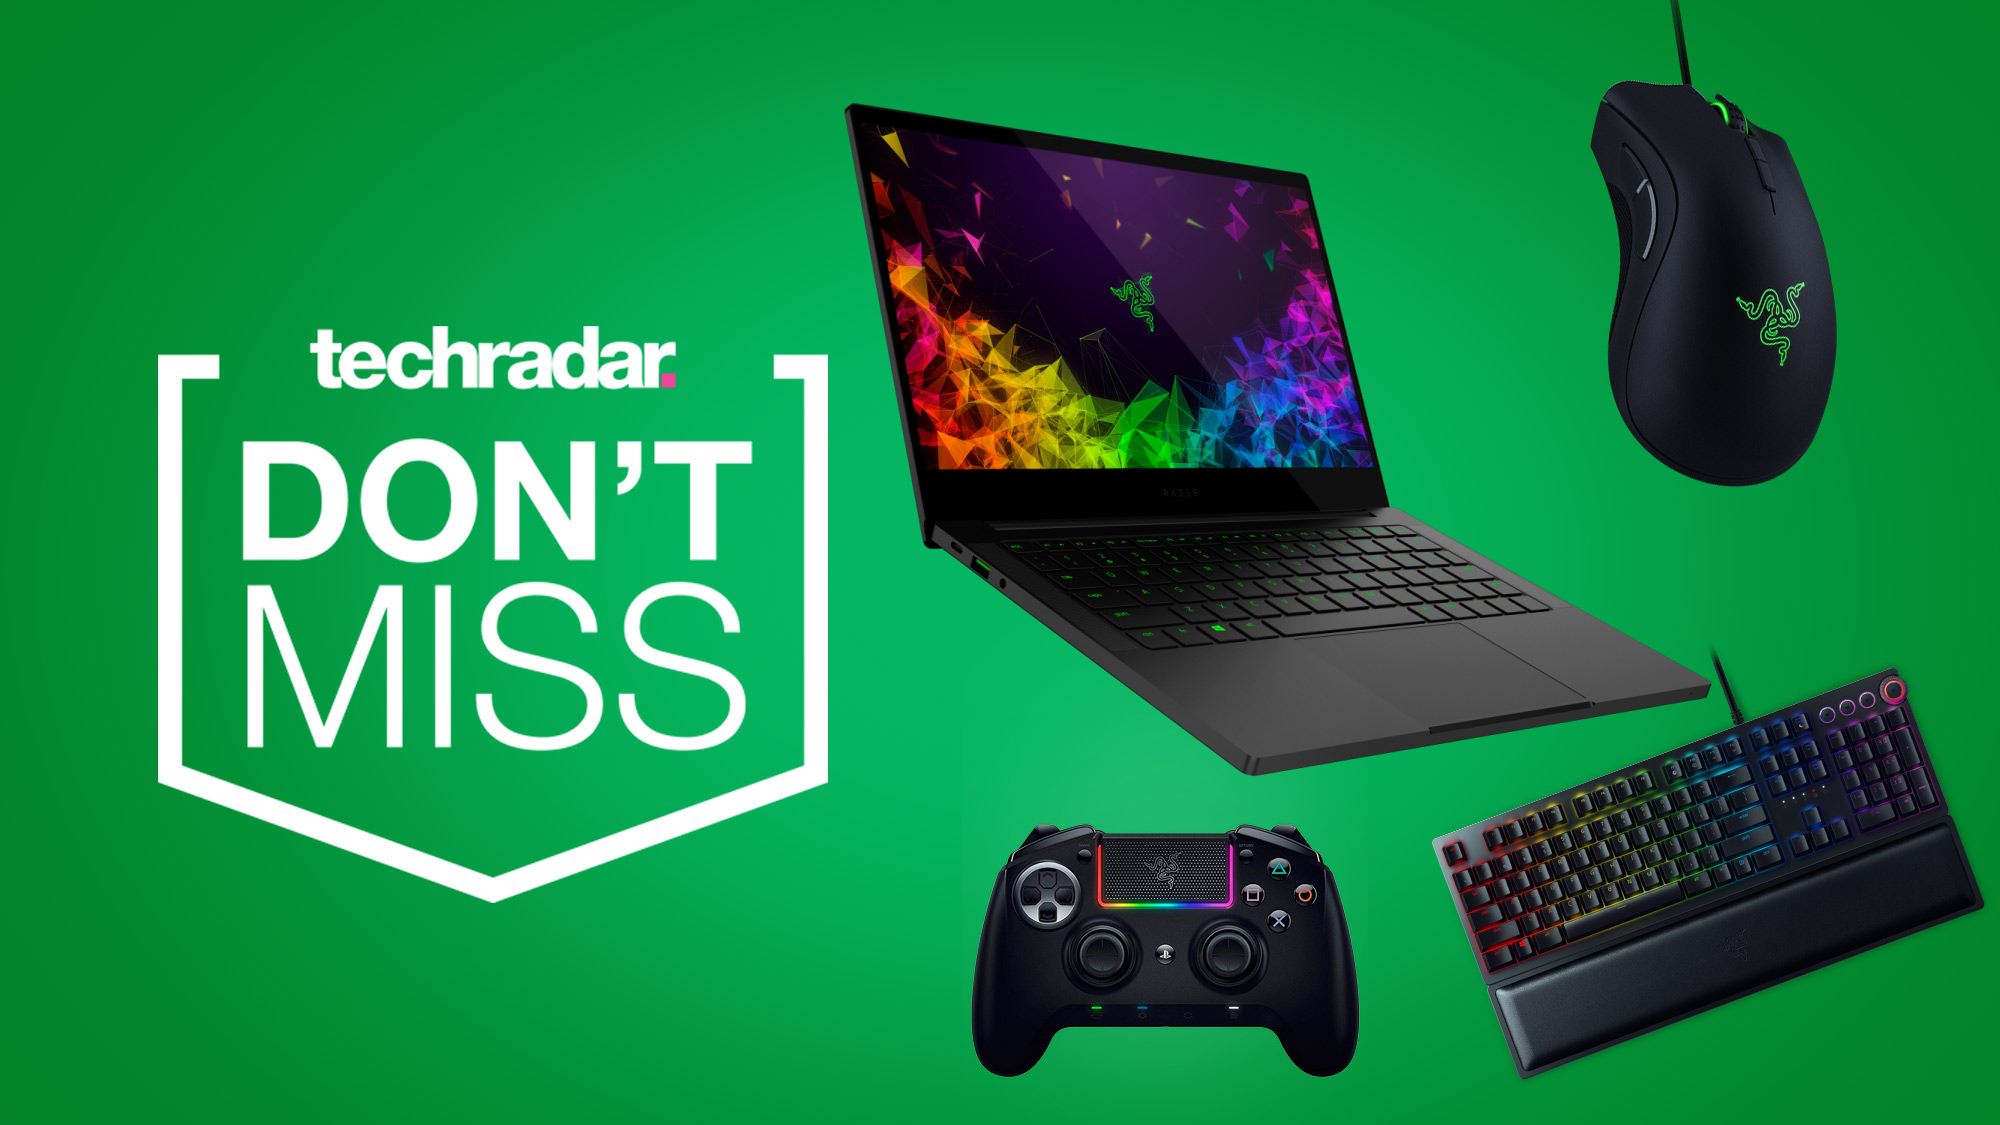 Let these Razer gaming deals set you up for 2020 in style: cheap Razer keyboards, mice, and laptops